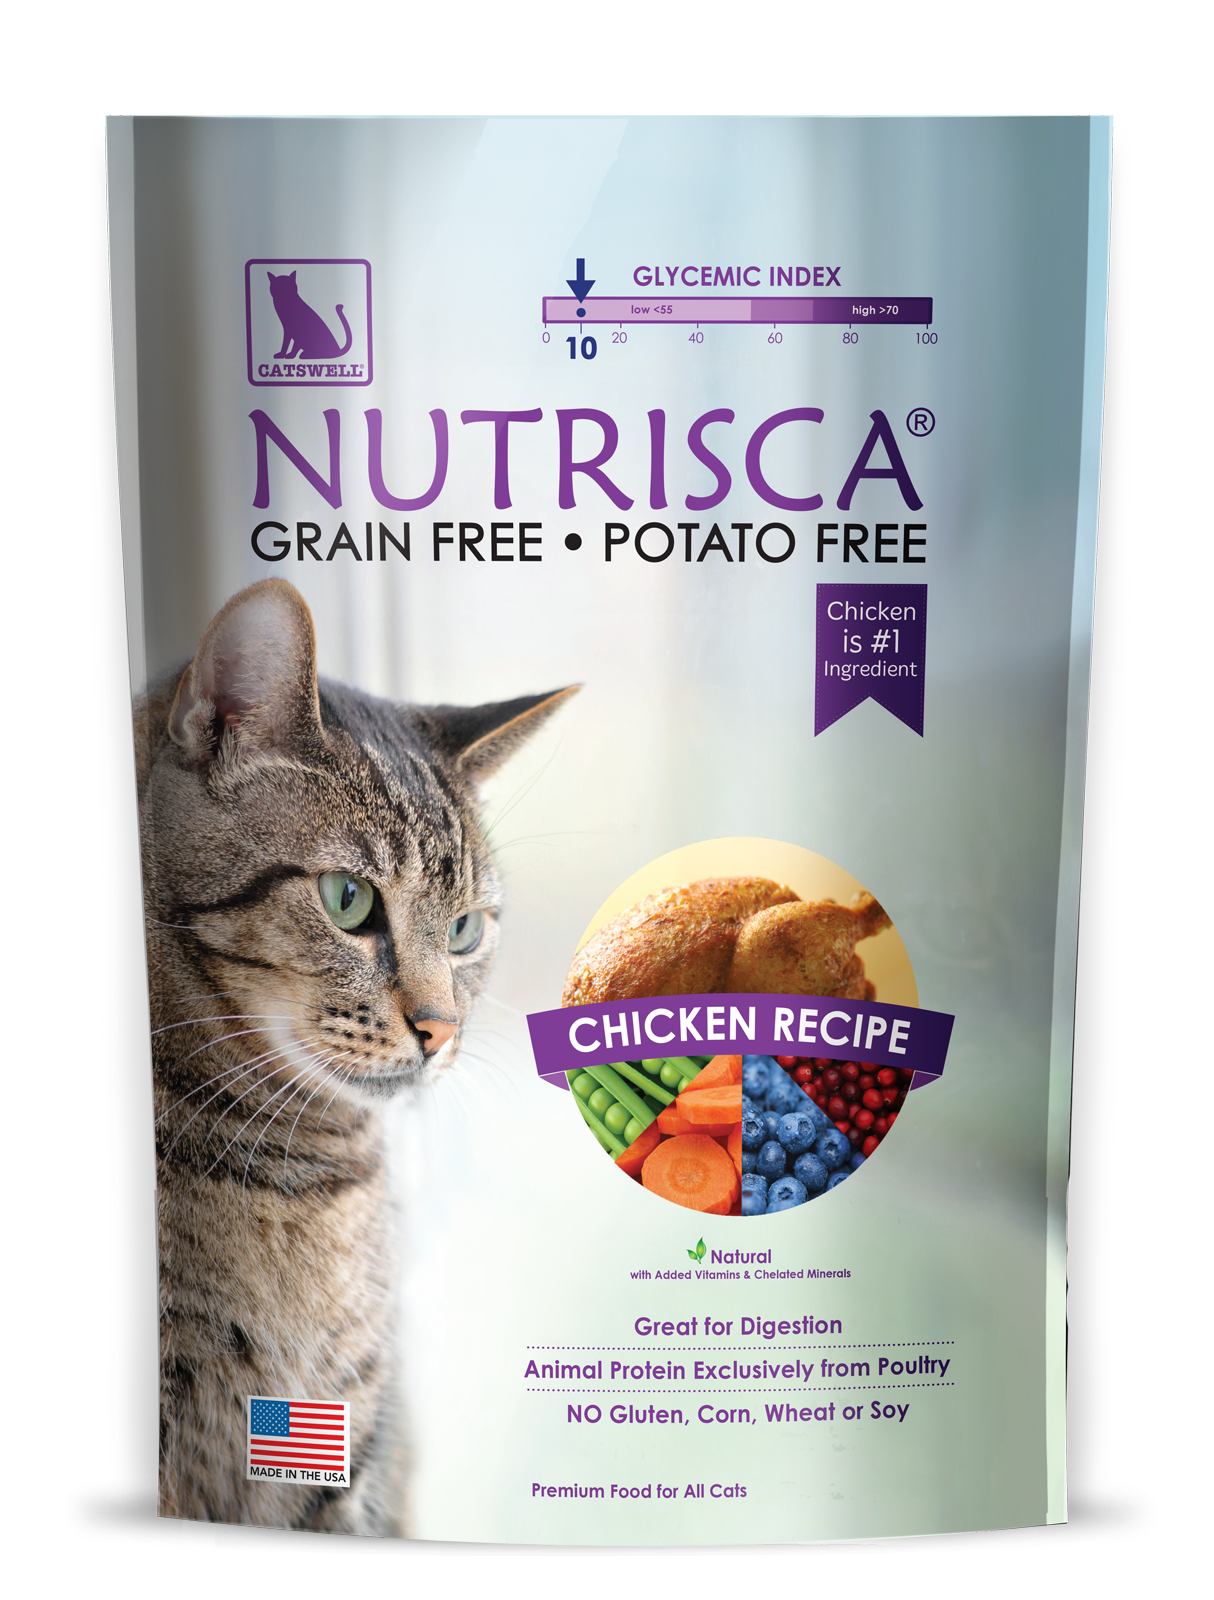 Catswell Nutrisca Grain-Free Chicken Recipe Dry Cat Food 4lbs